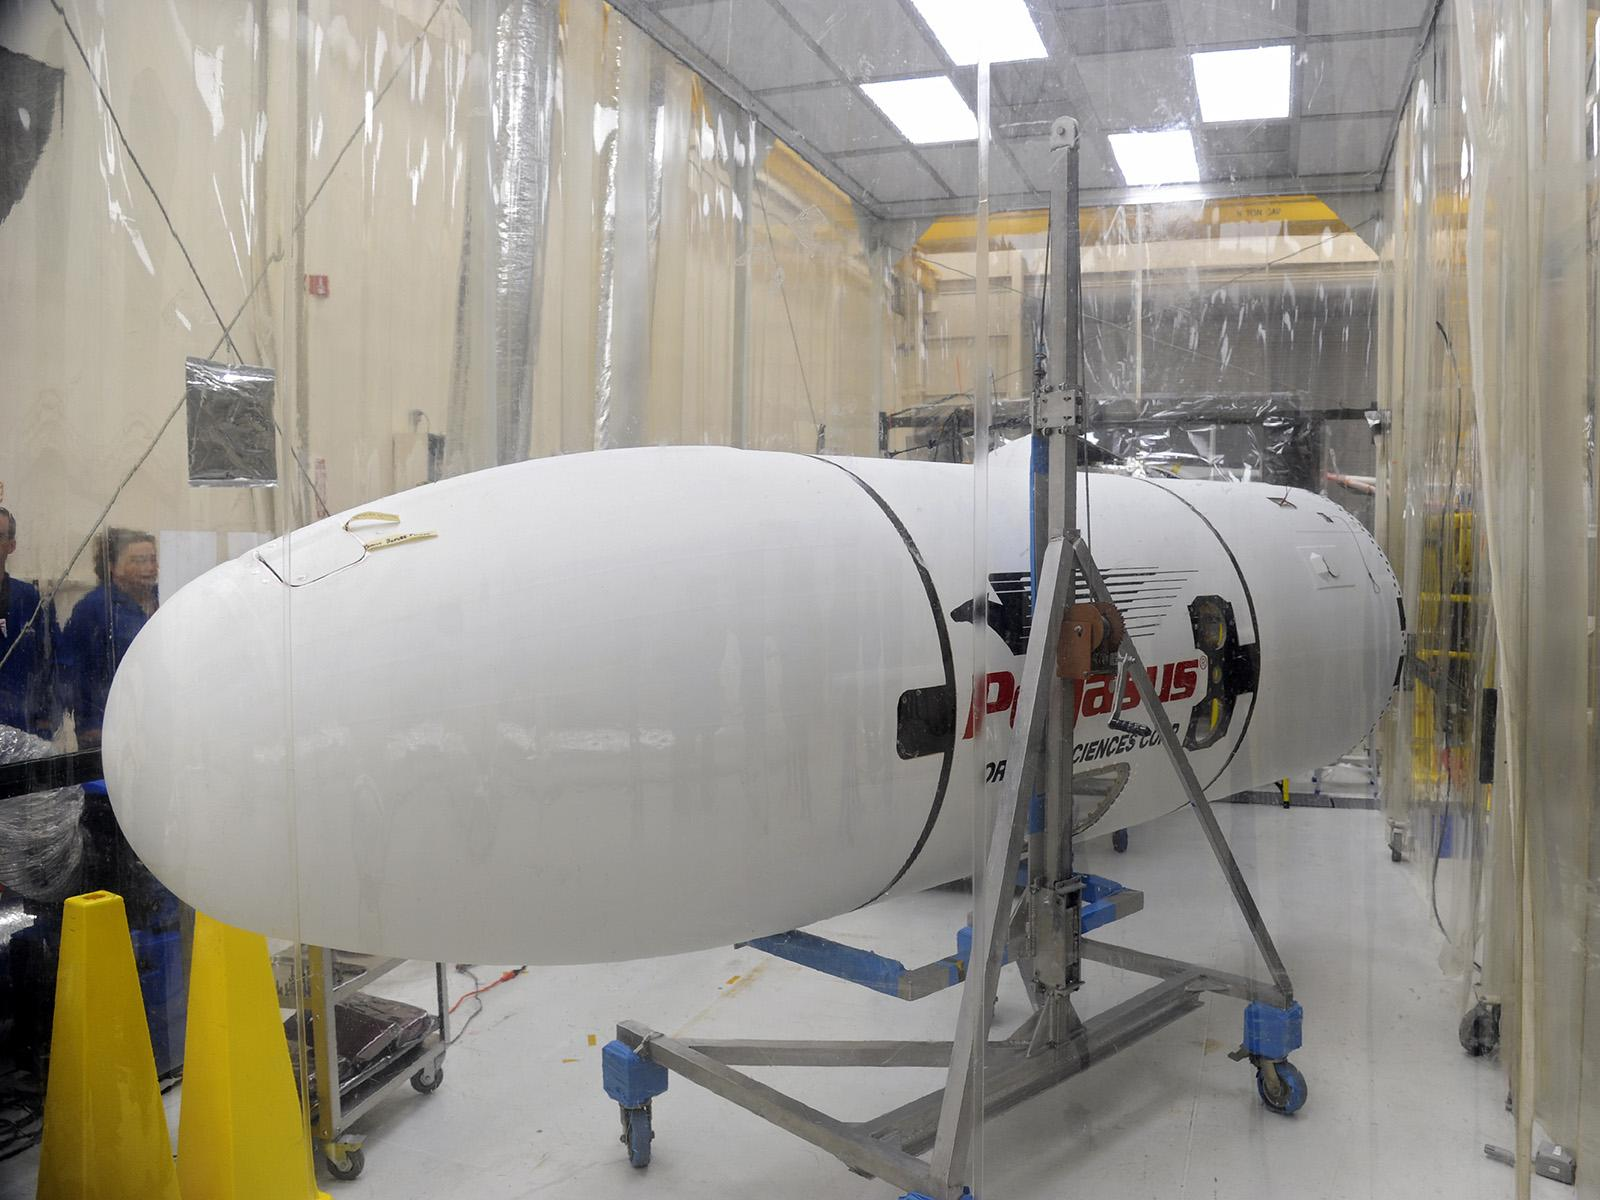 Payload Fairing Moved for Installation